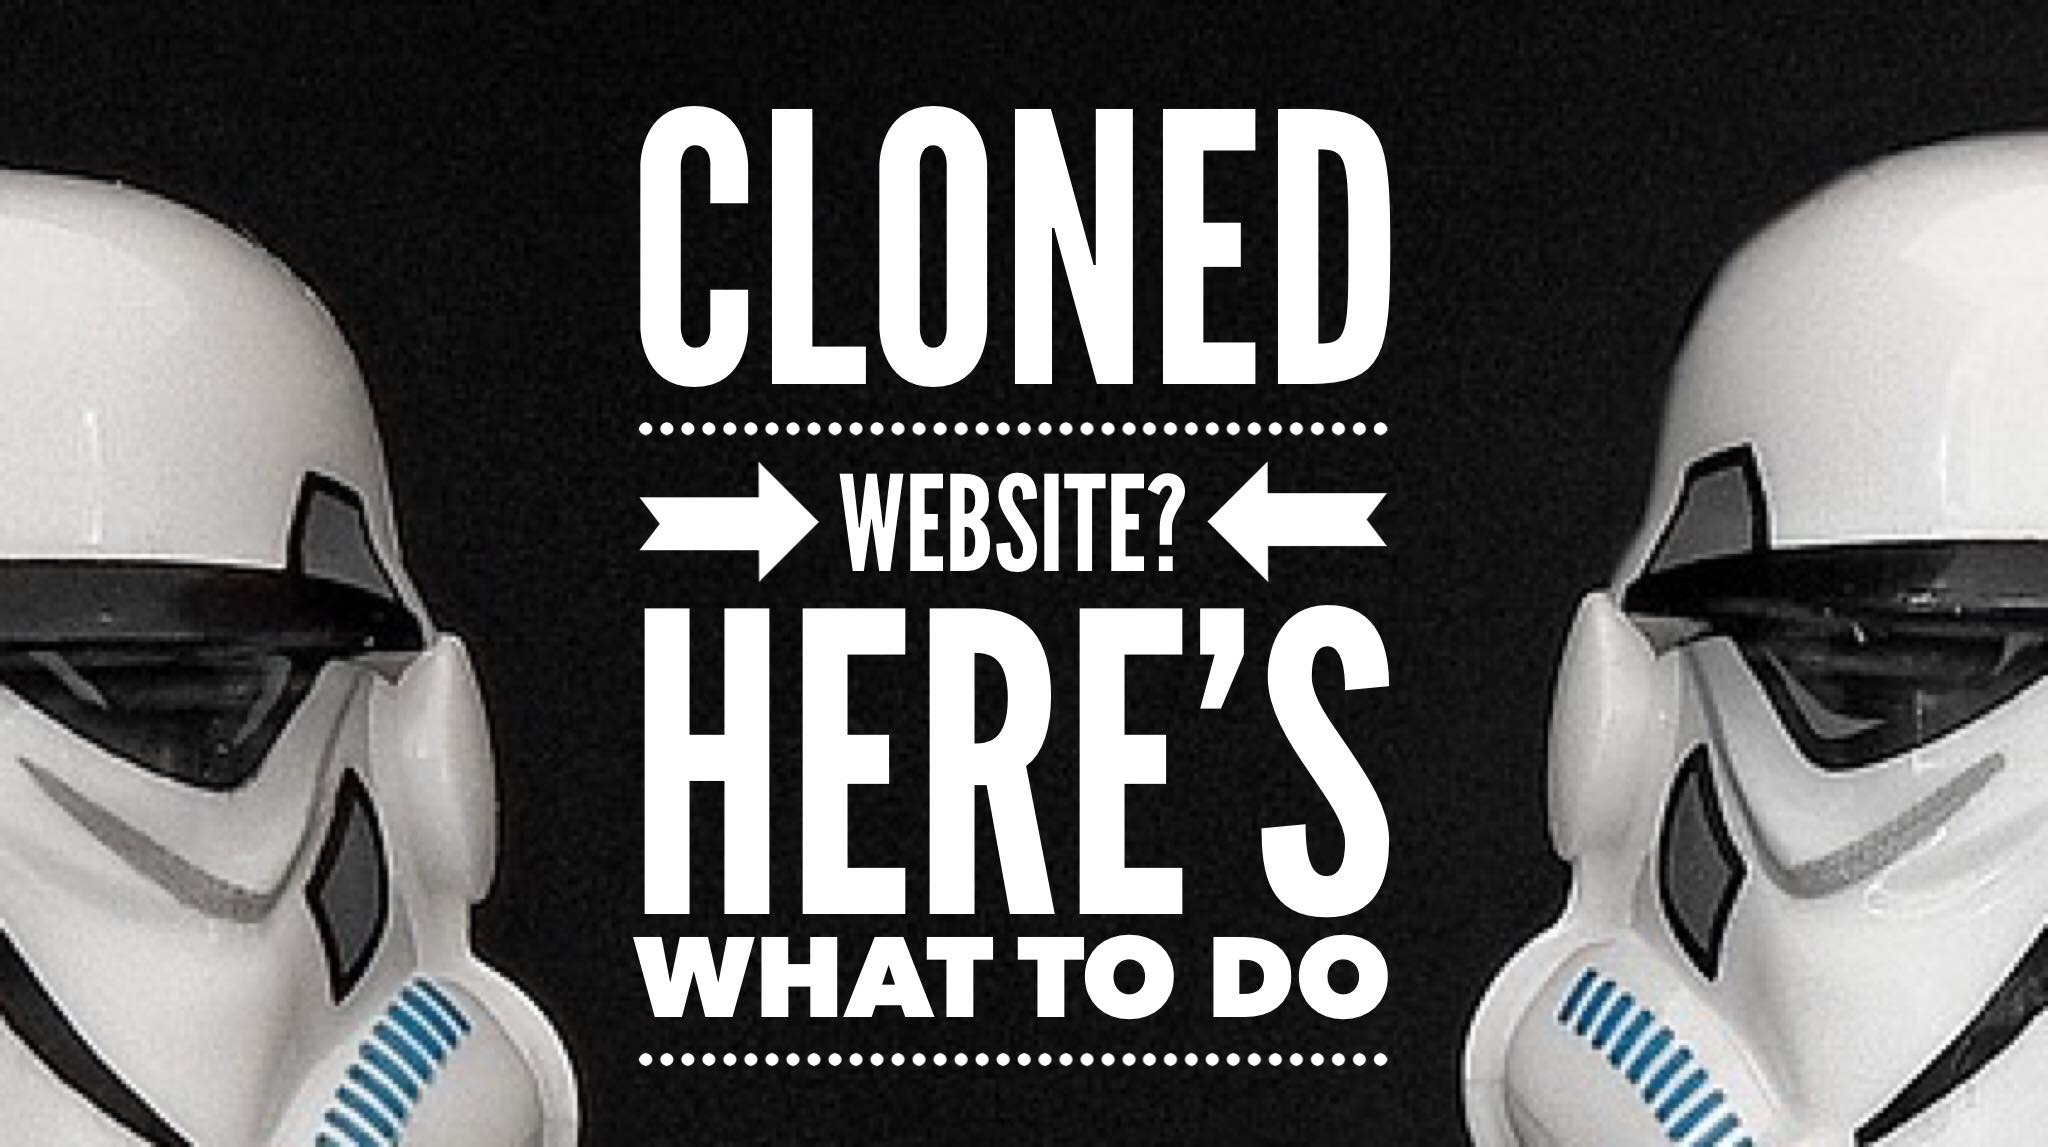 image of start wars clones with the words: cloned website? here's what to do